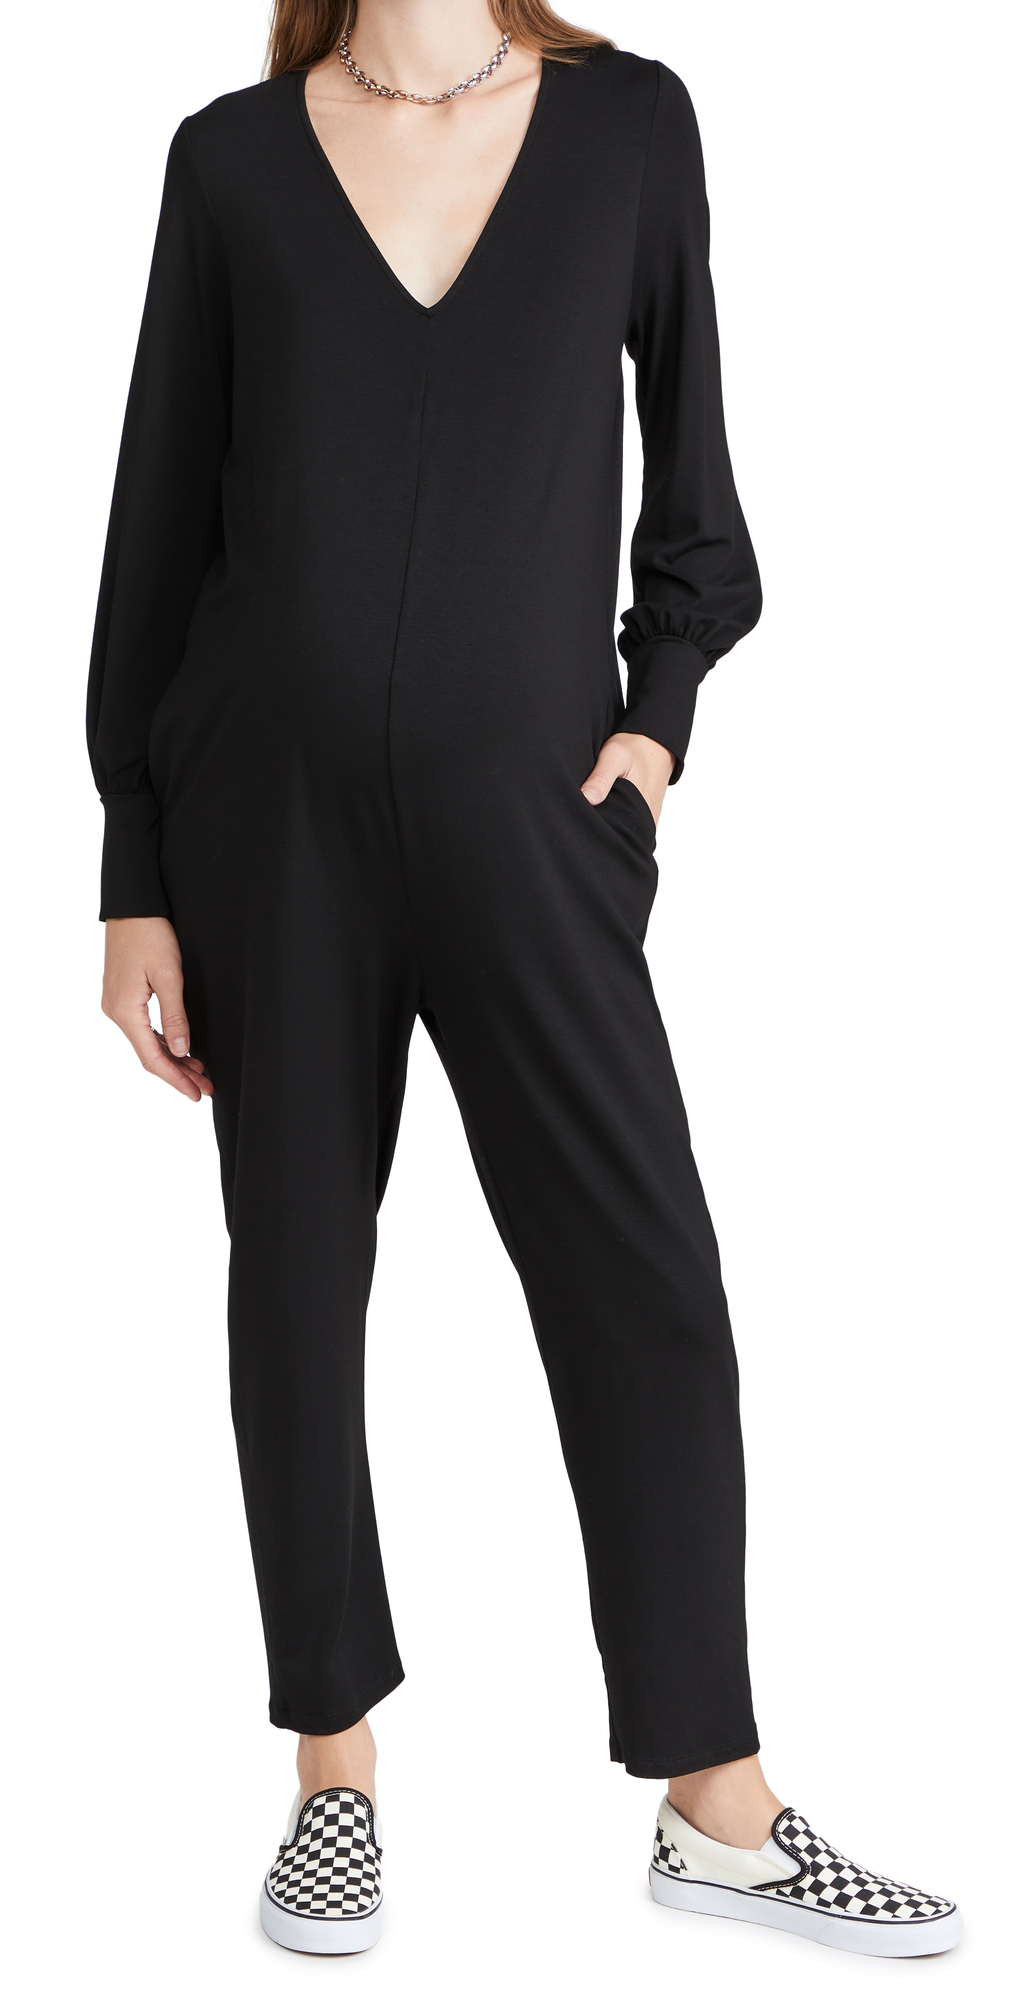 The Uptown Jersey Jumpsuit